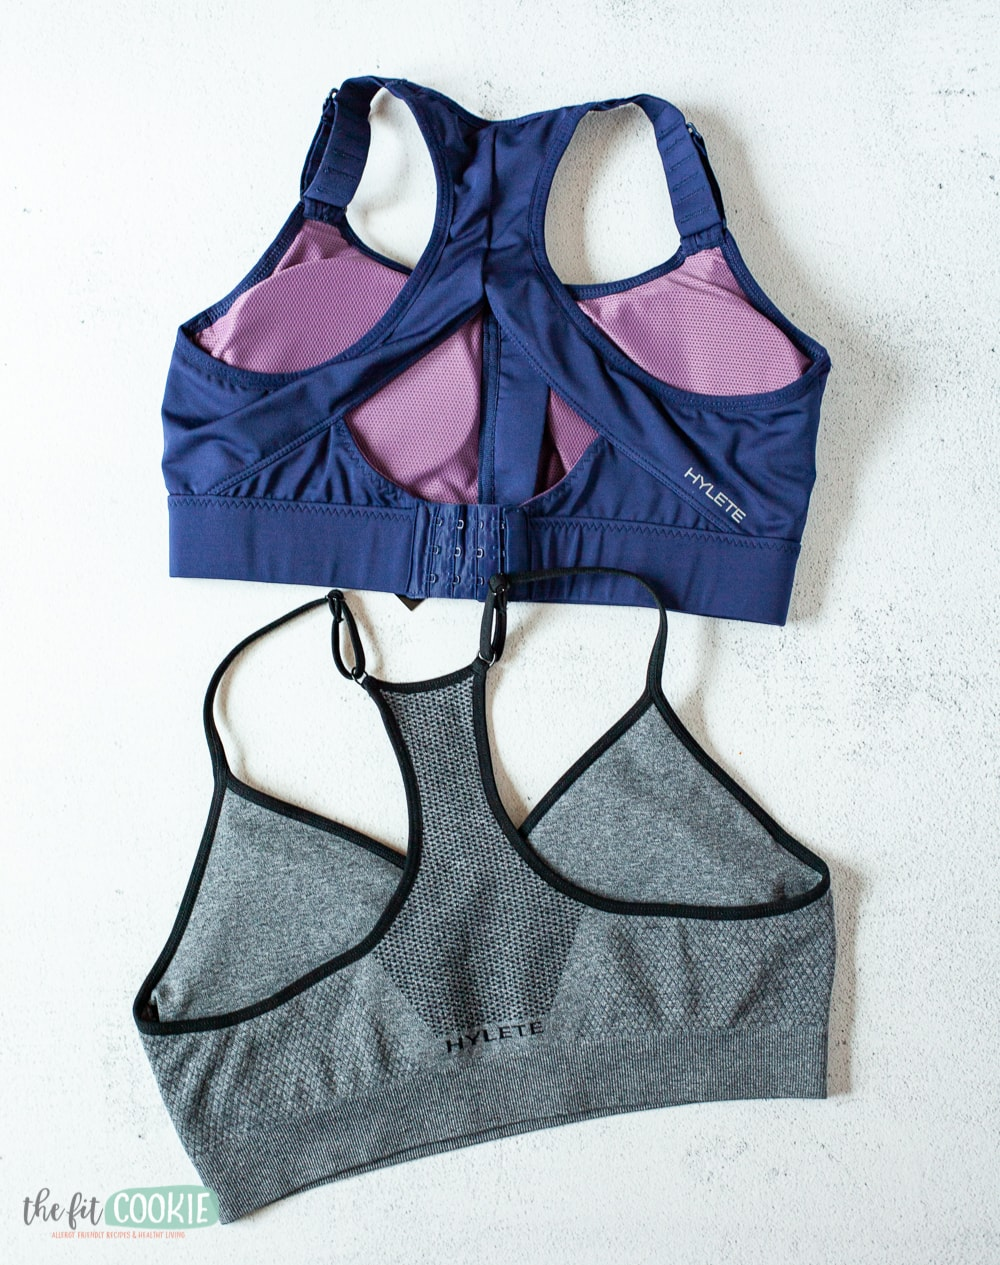 2 Hylete sports bras